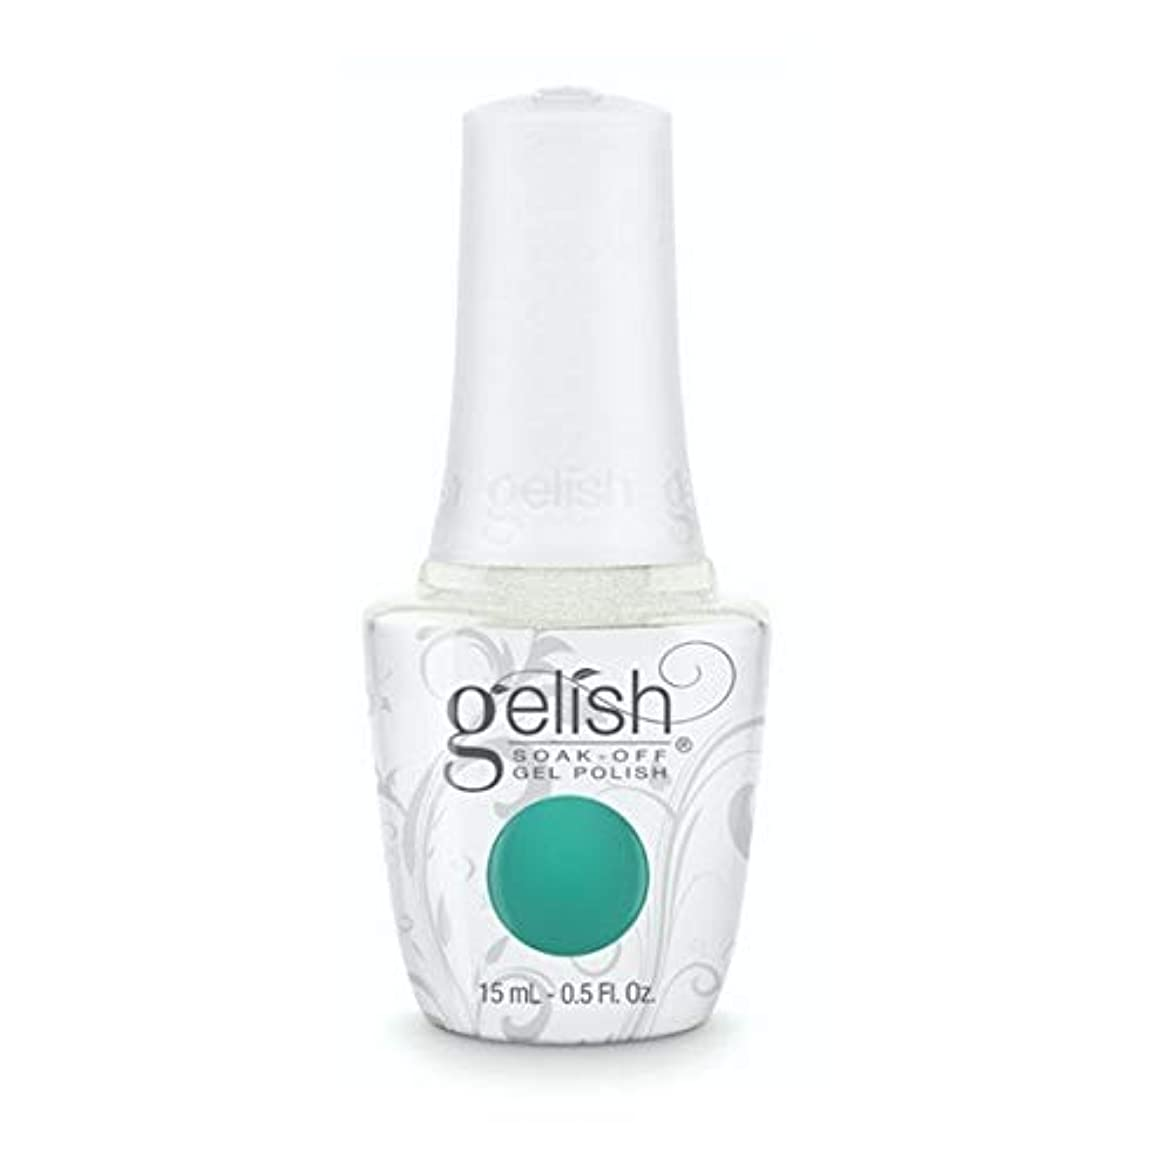 アンドリューハリディ議論するジャーナルHarmony Gelish - Rocketman Collection - Sir Teal To You - 15ml / 0.5oz